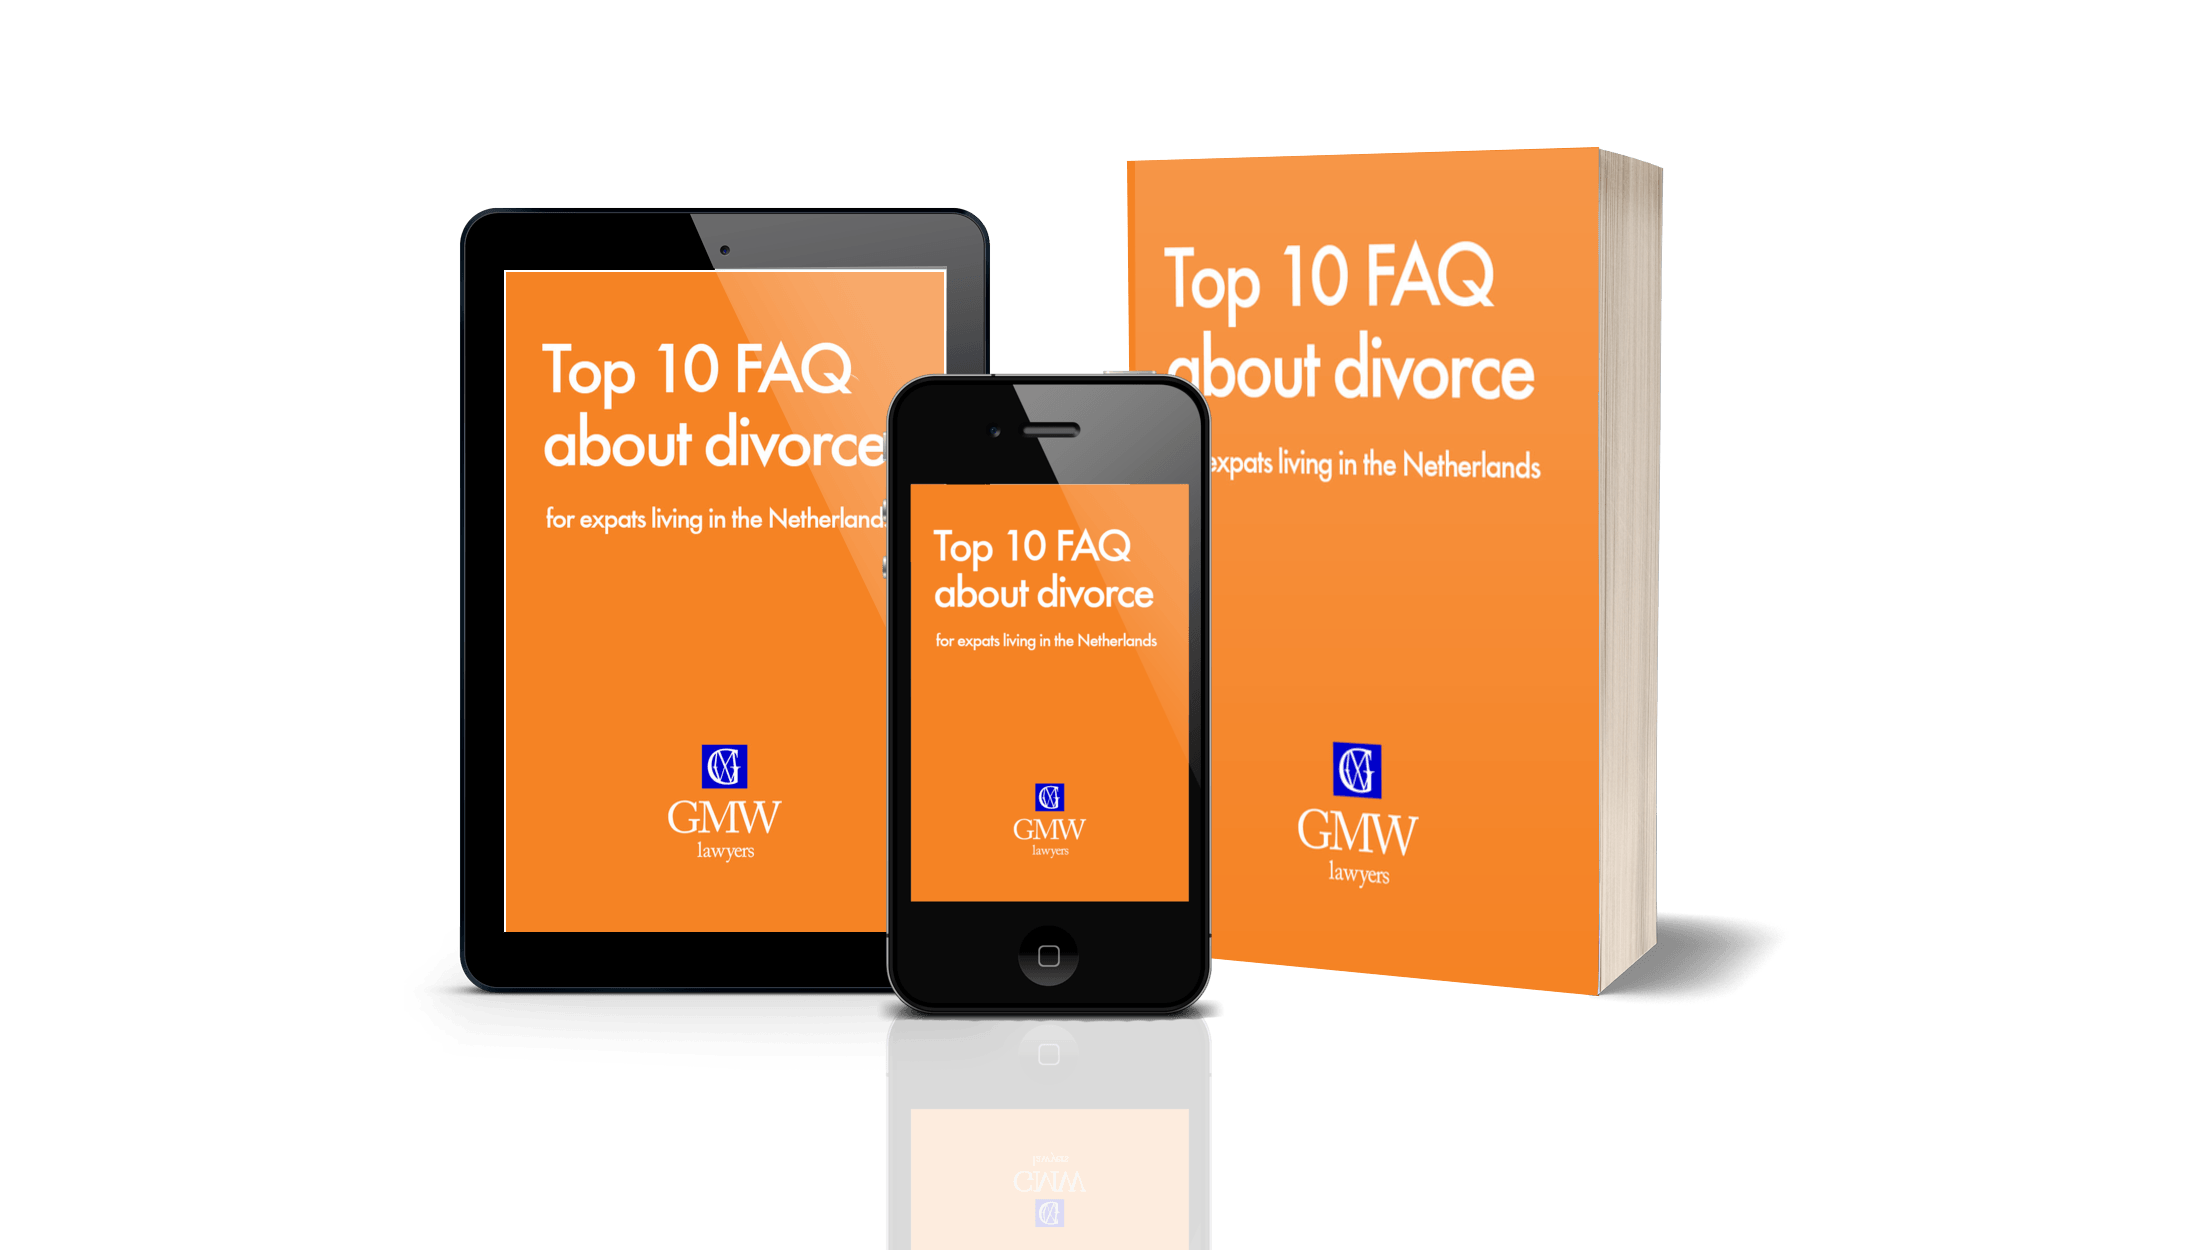 Top 10 FAQ about divorce white paper